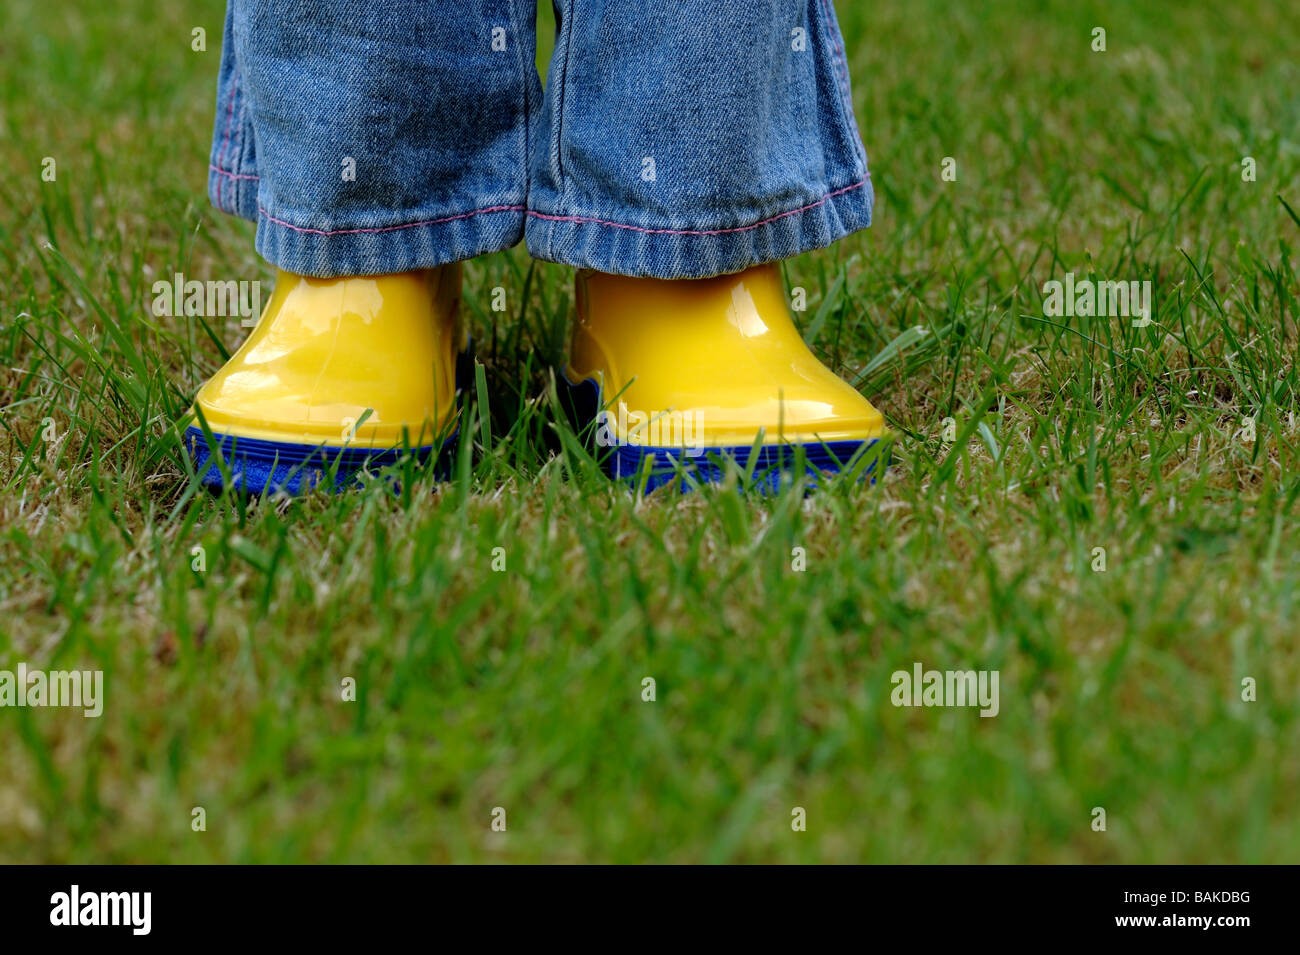 Girl on lawn wearing wellington boots - Stock Image